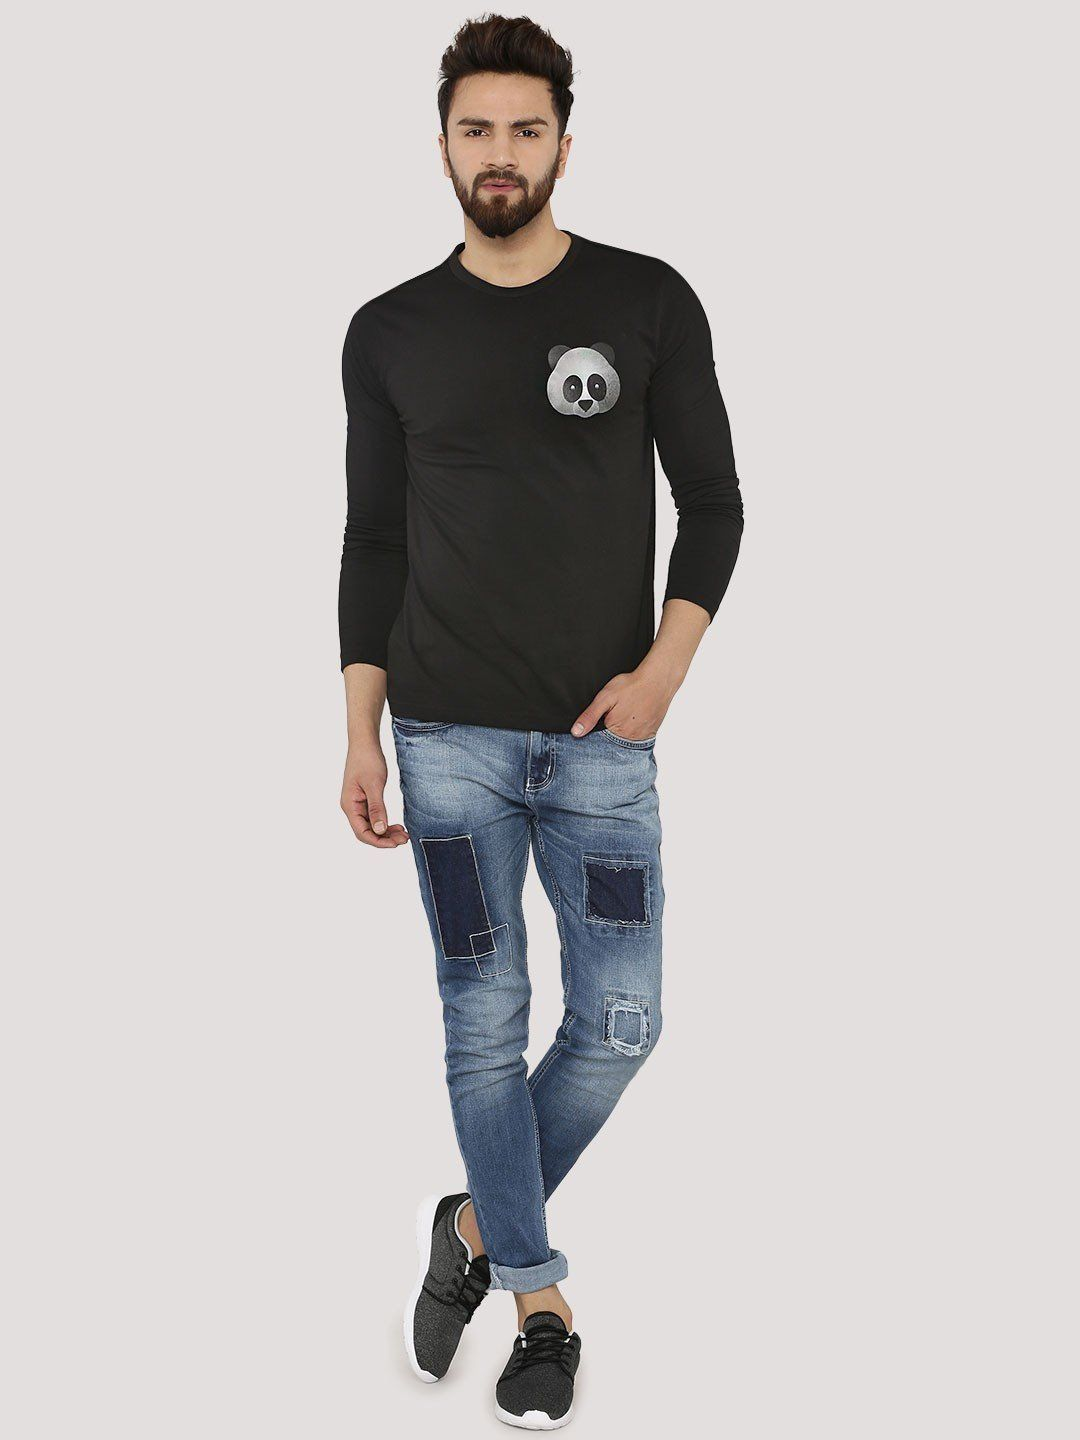 PANDA Long Sleeve Black T-Shirt - Fighting Fame  - 3